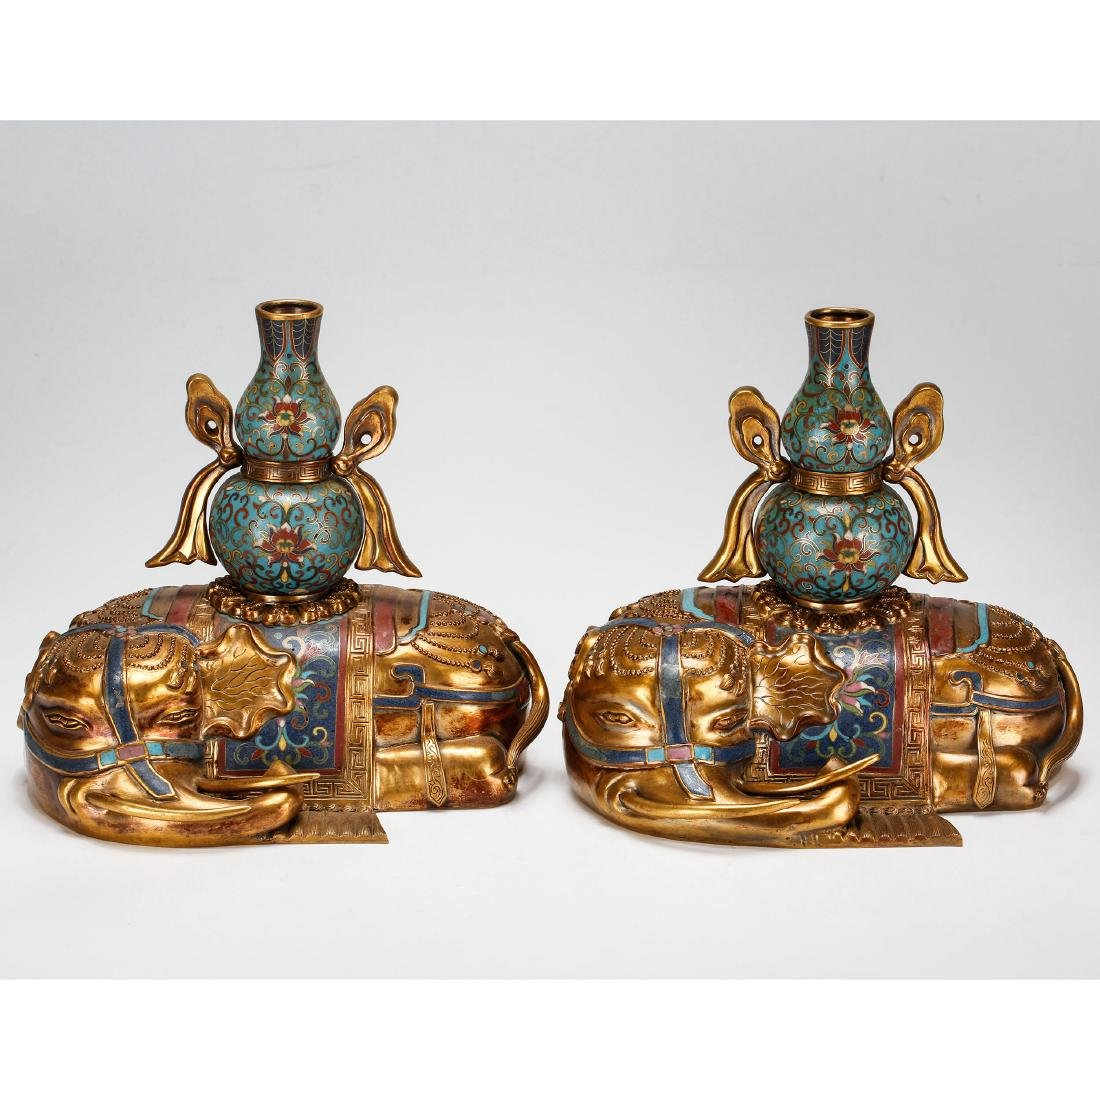 PAIR OF CHINESE CLOISONNE ELEPHANTS, QING DYNASTY